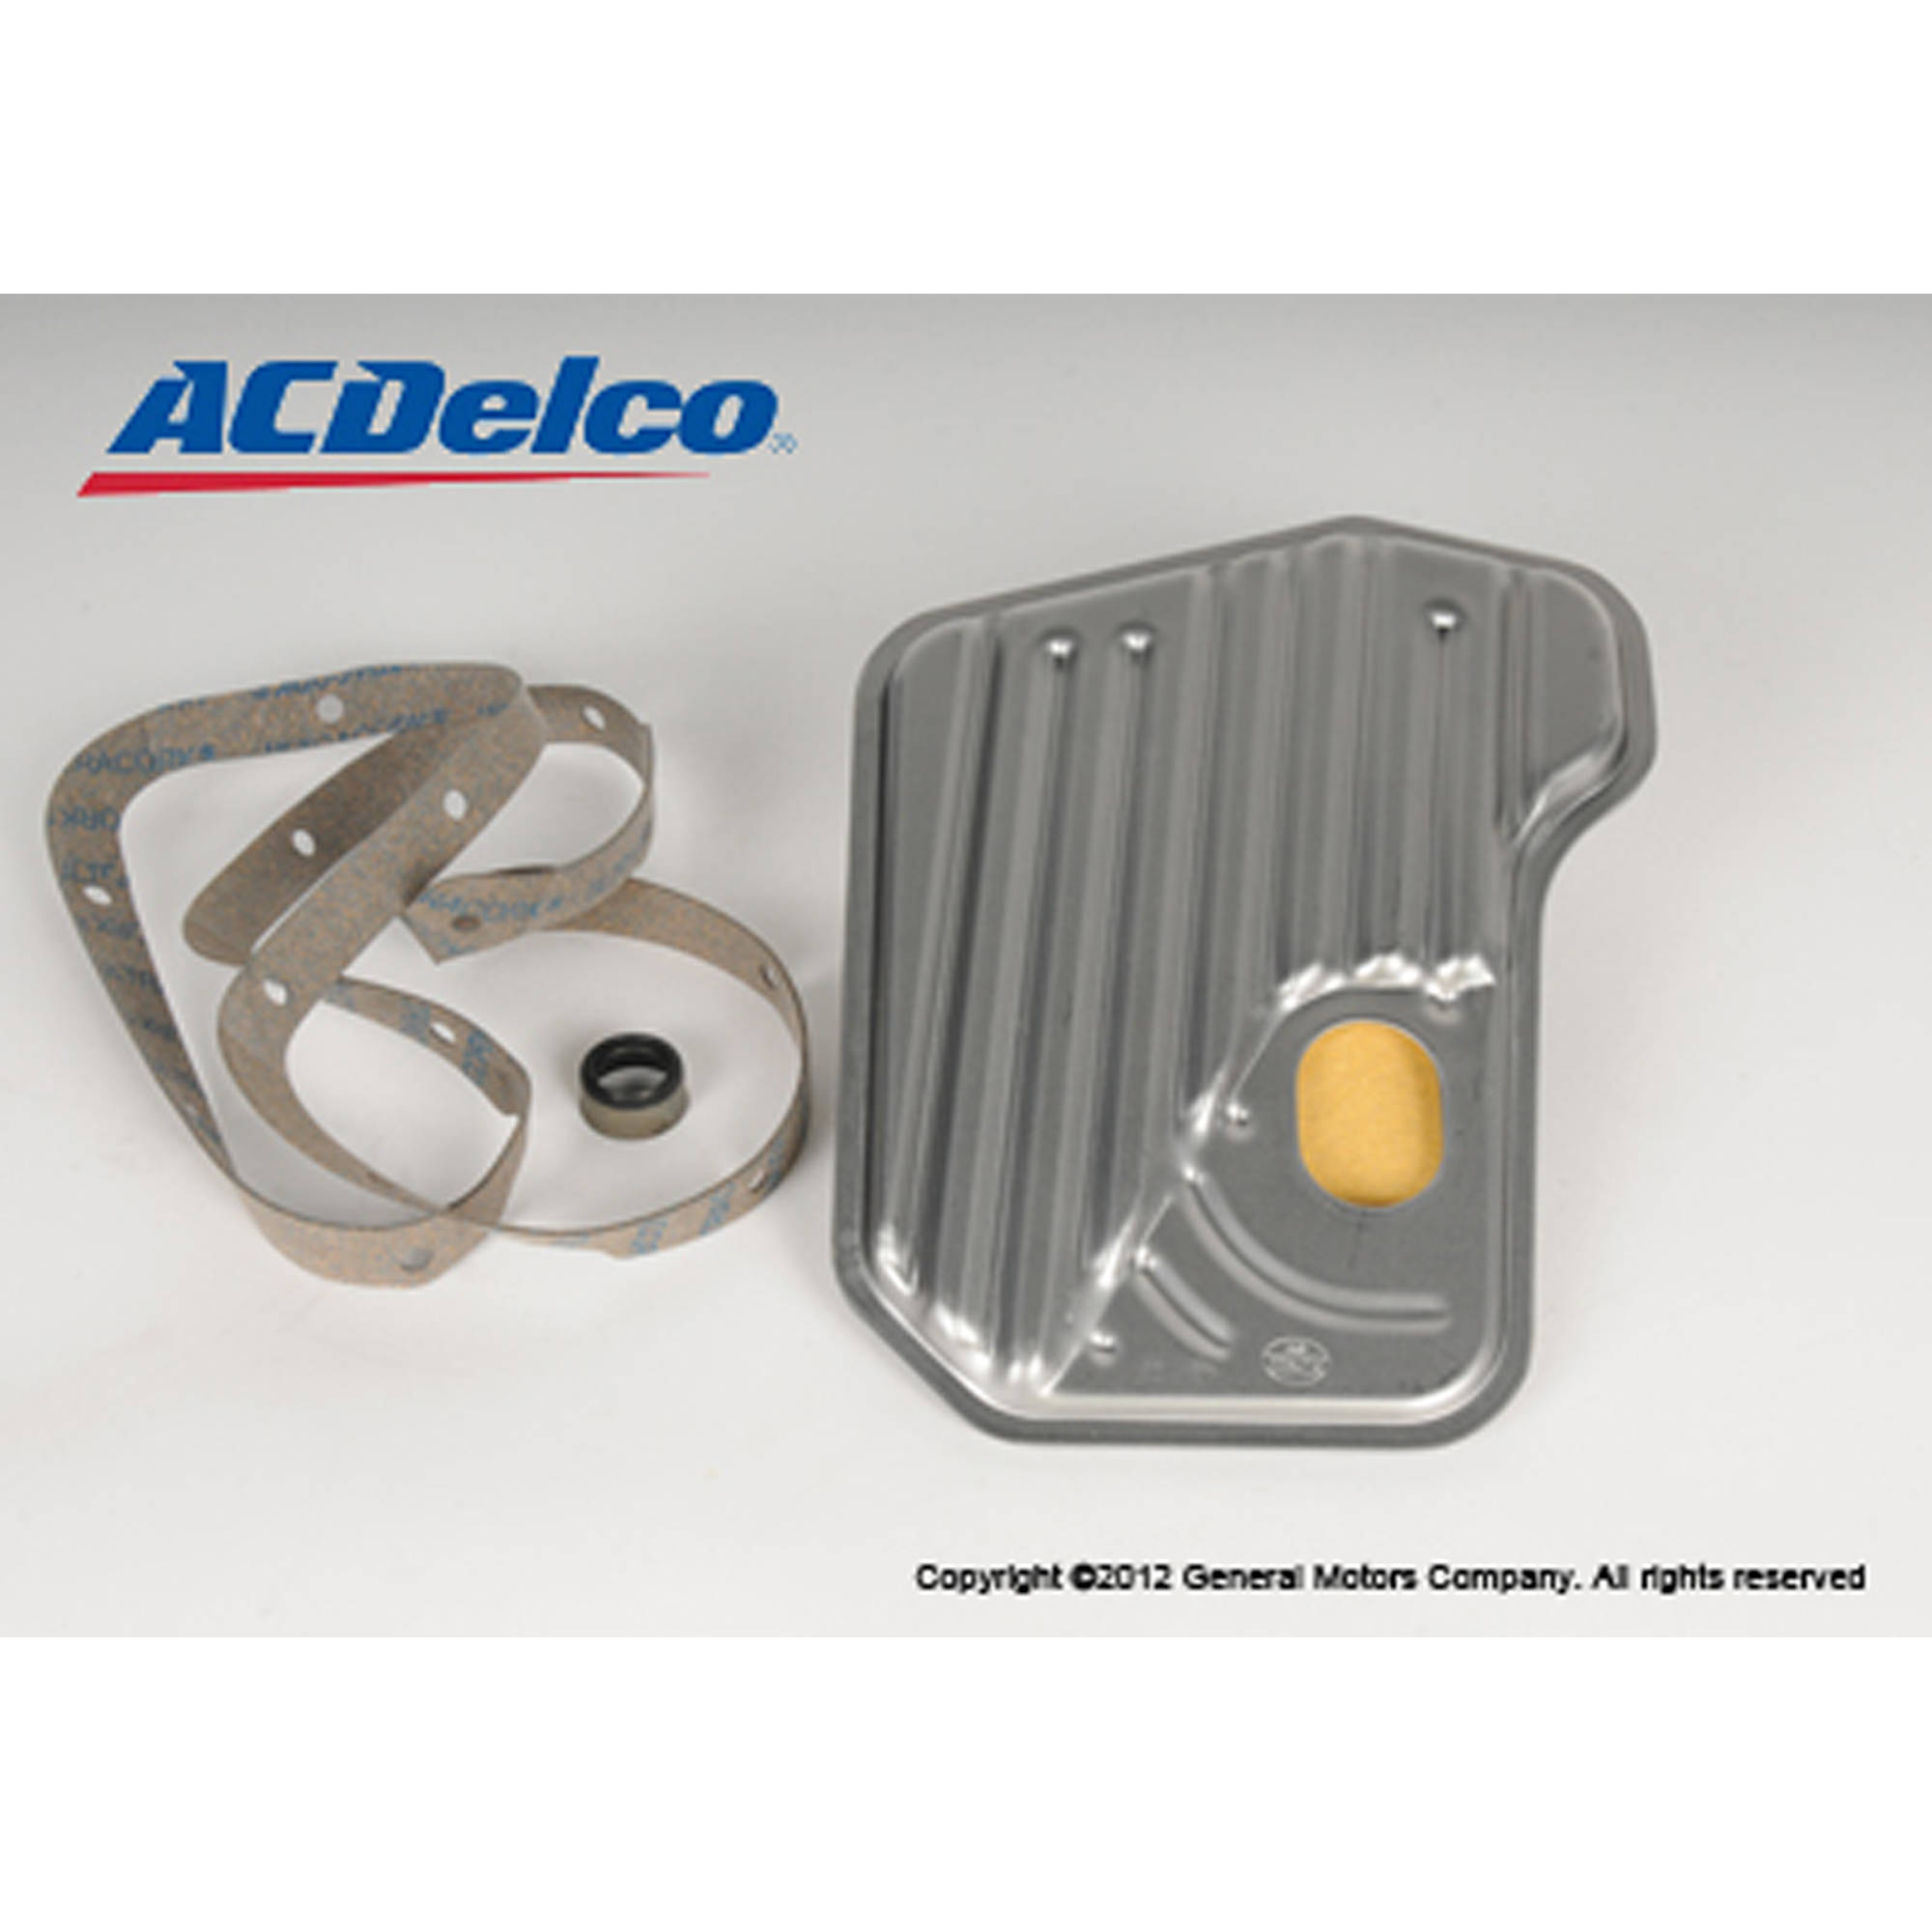 ACDelco Transmission Filter, #TF333